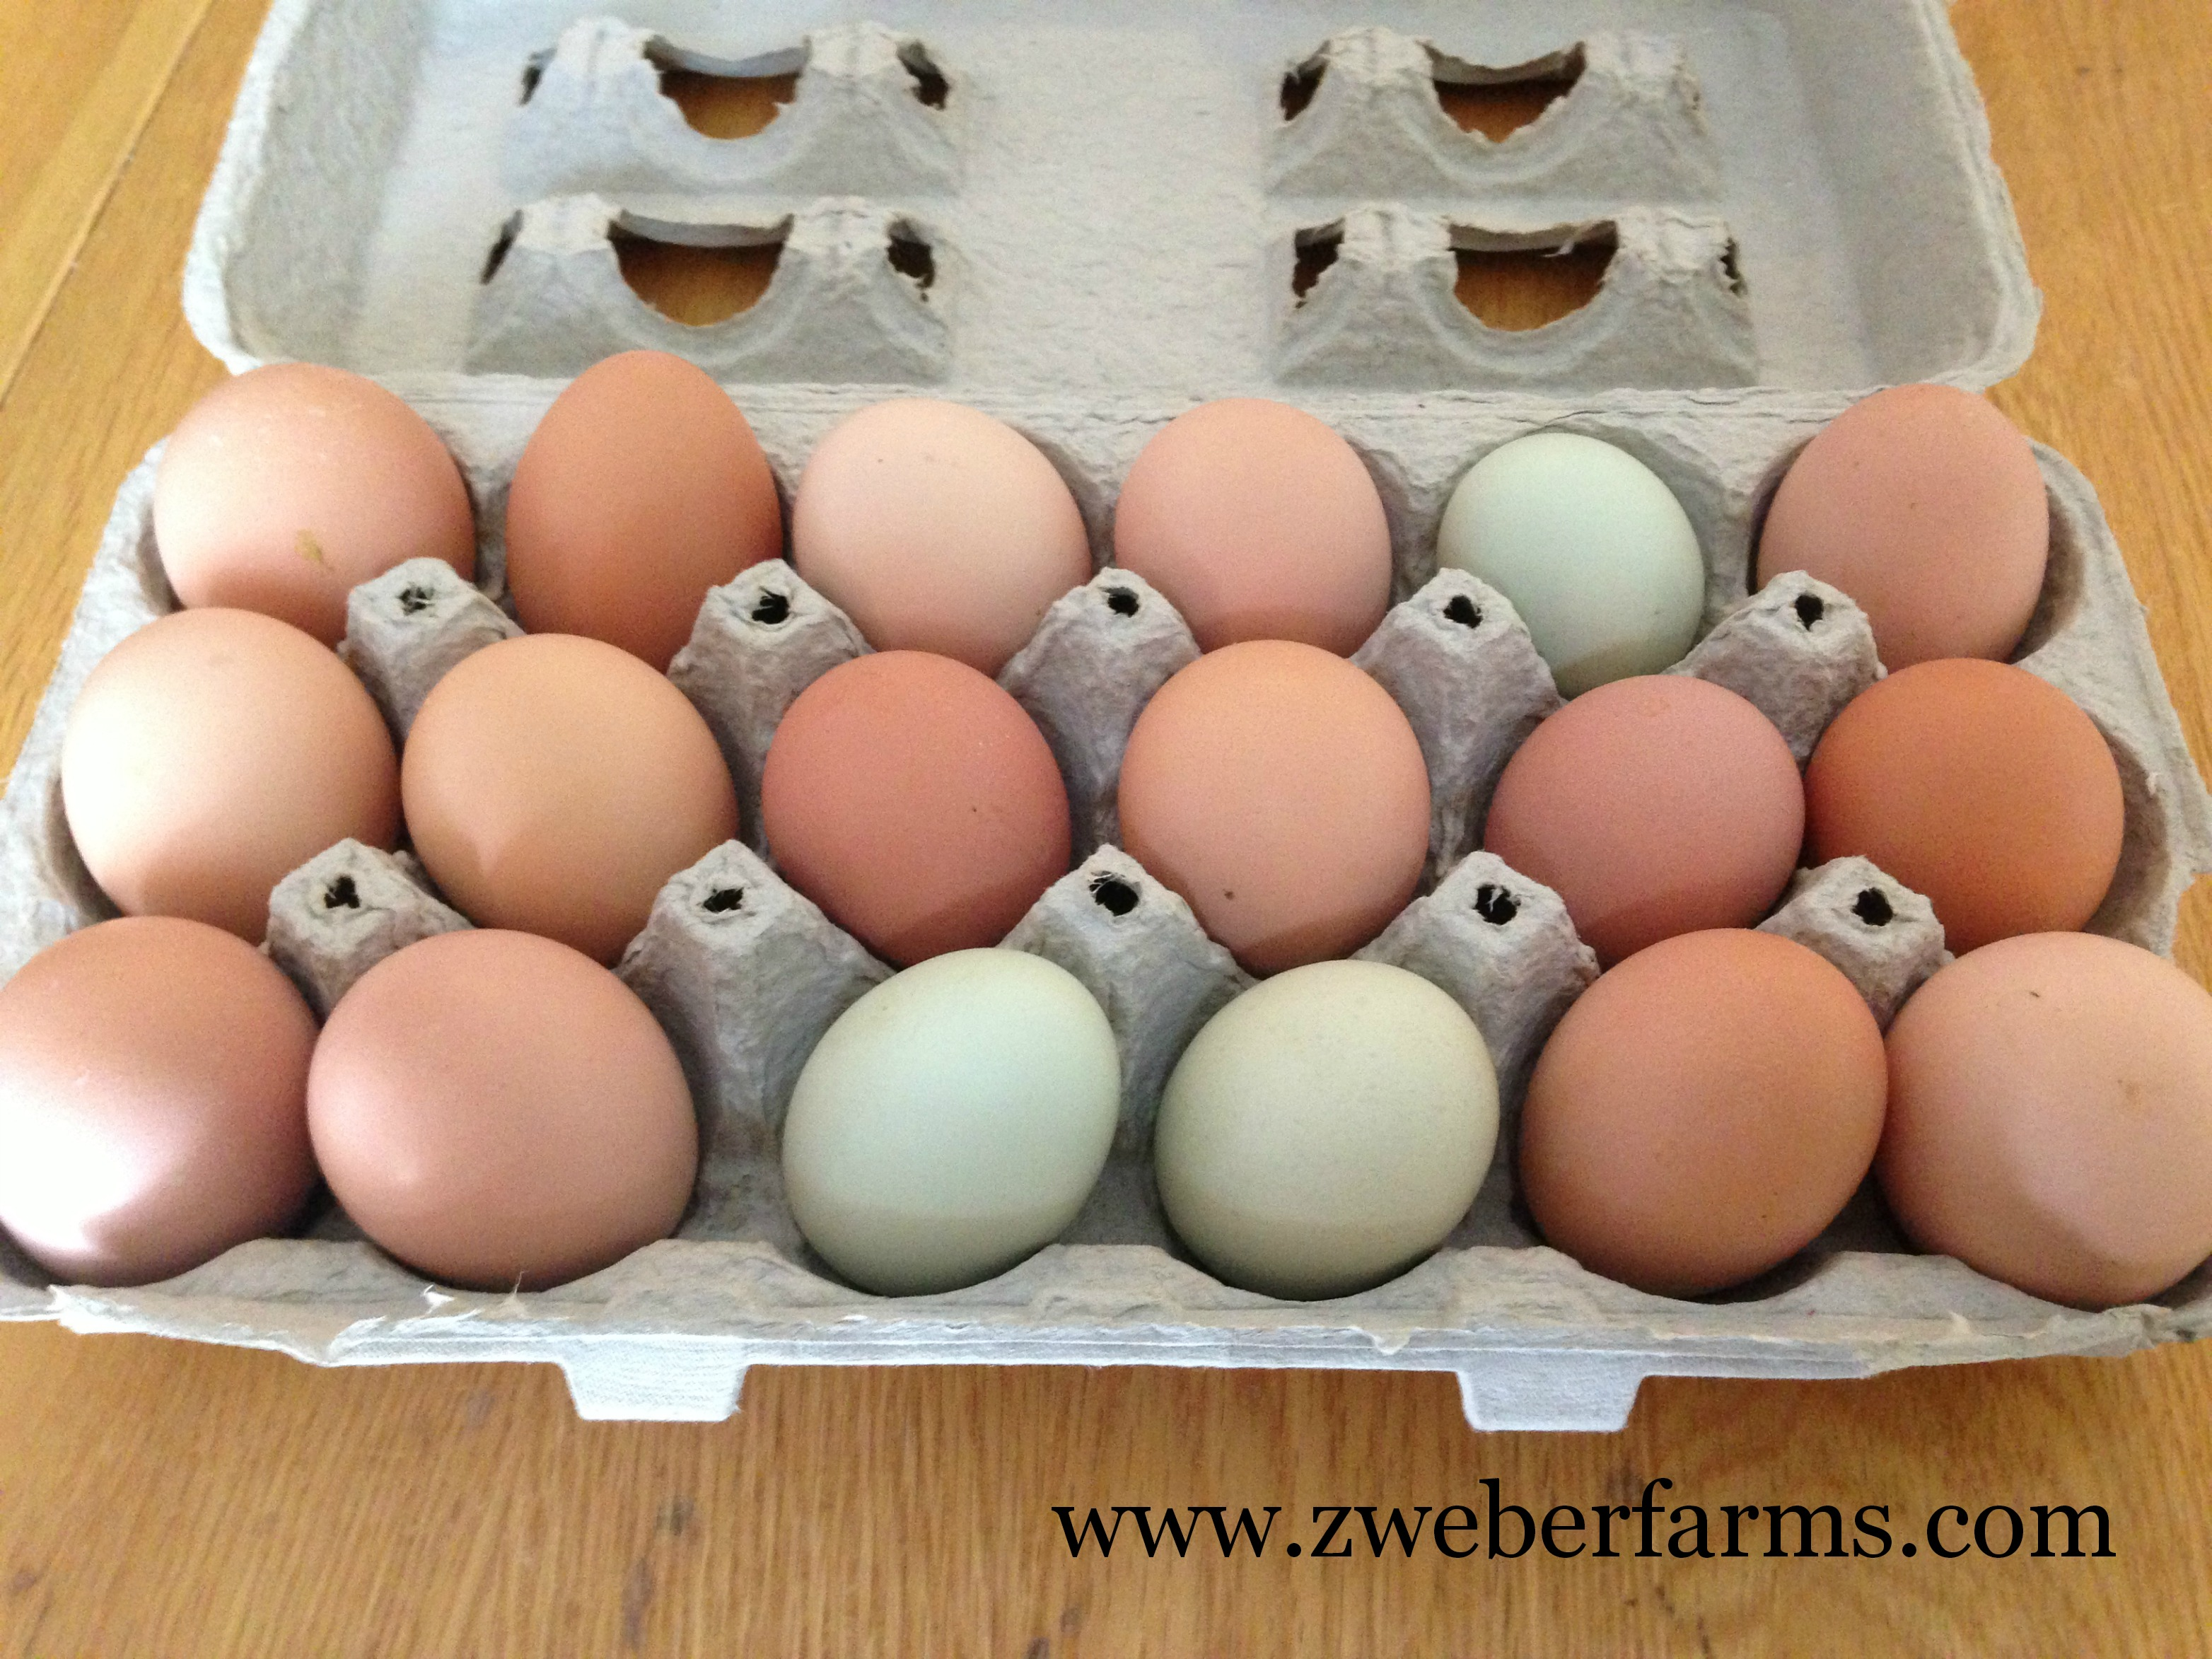 Free range eggs in carton